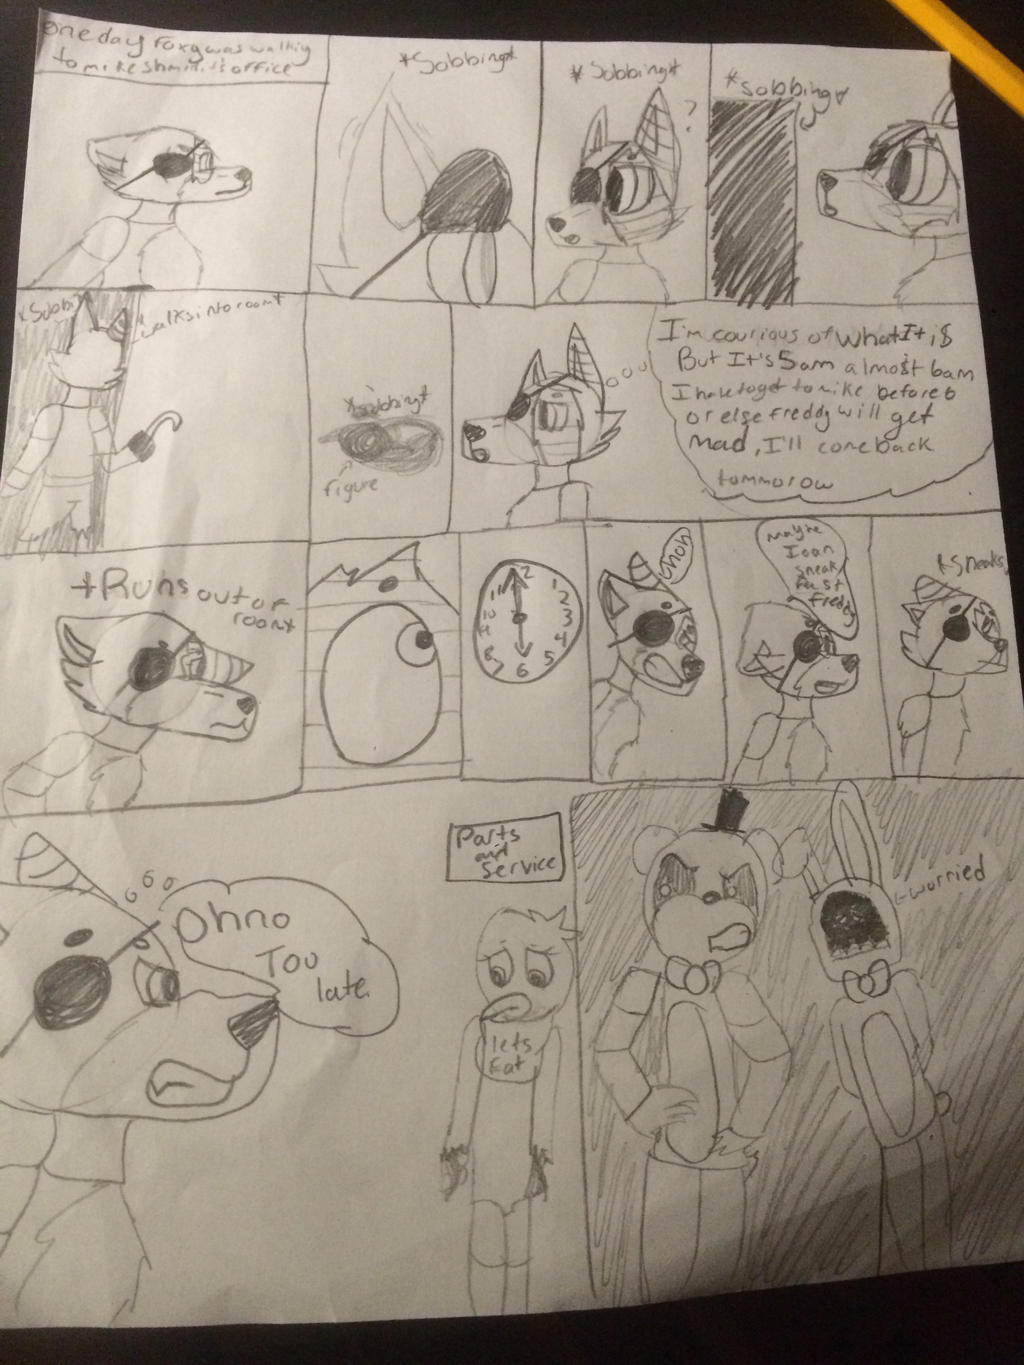 Mangle x foxy fanfiction pg 2 by ashleyt09 on deviantart